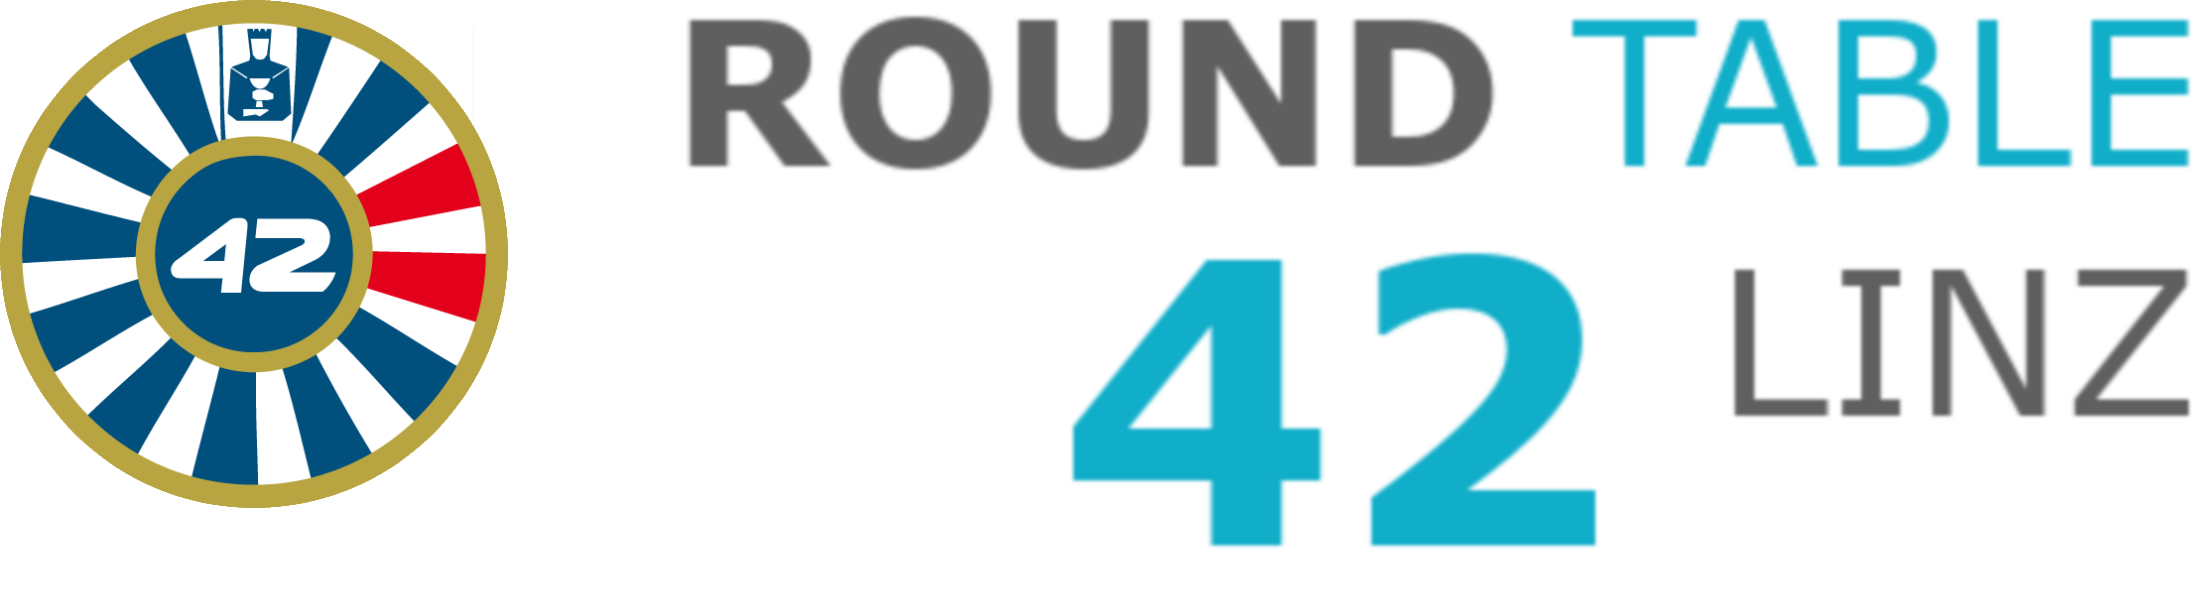 Round Table 42 Linz